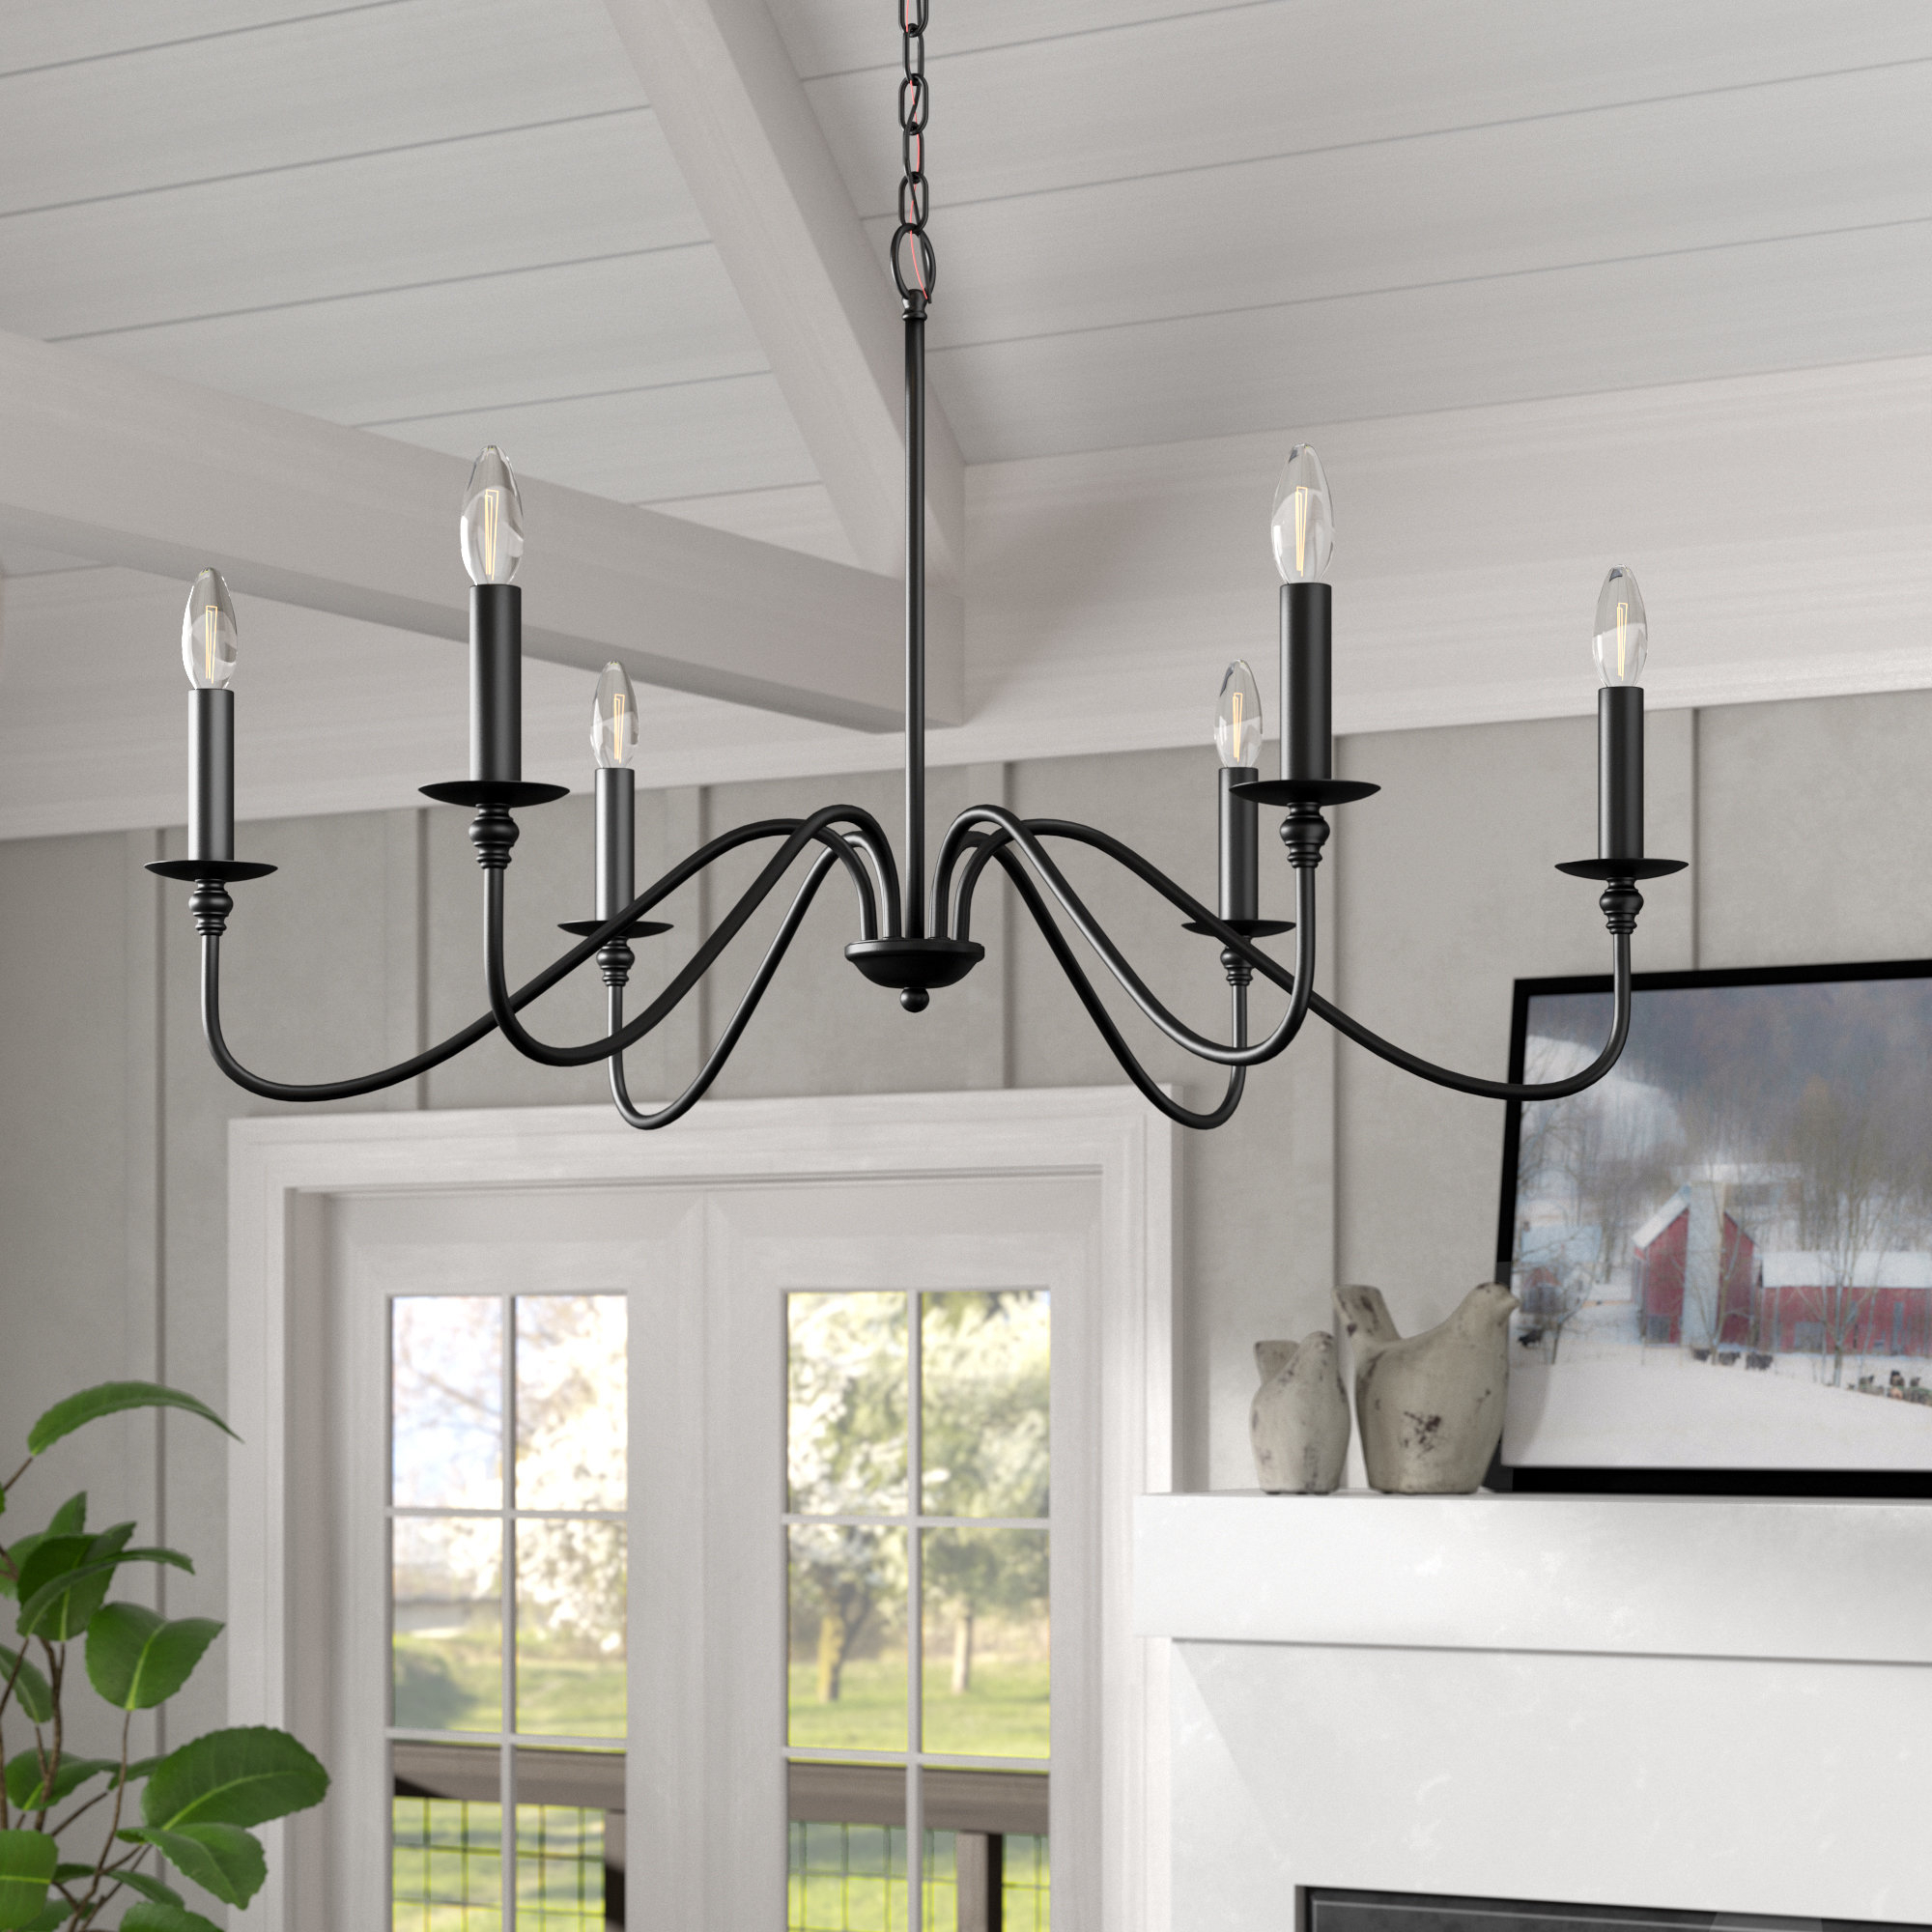 Hamza 6 Light Candle Style Chandelier With Regard To Shaylee 6 Light Candle Style Chandeliers (View 13 of 30)